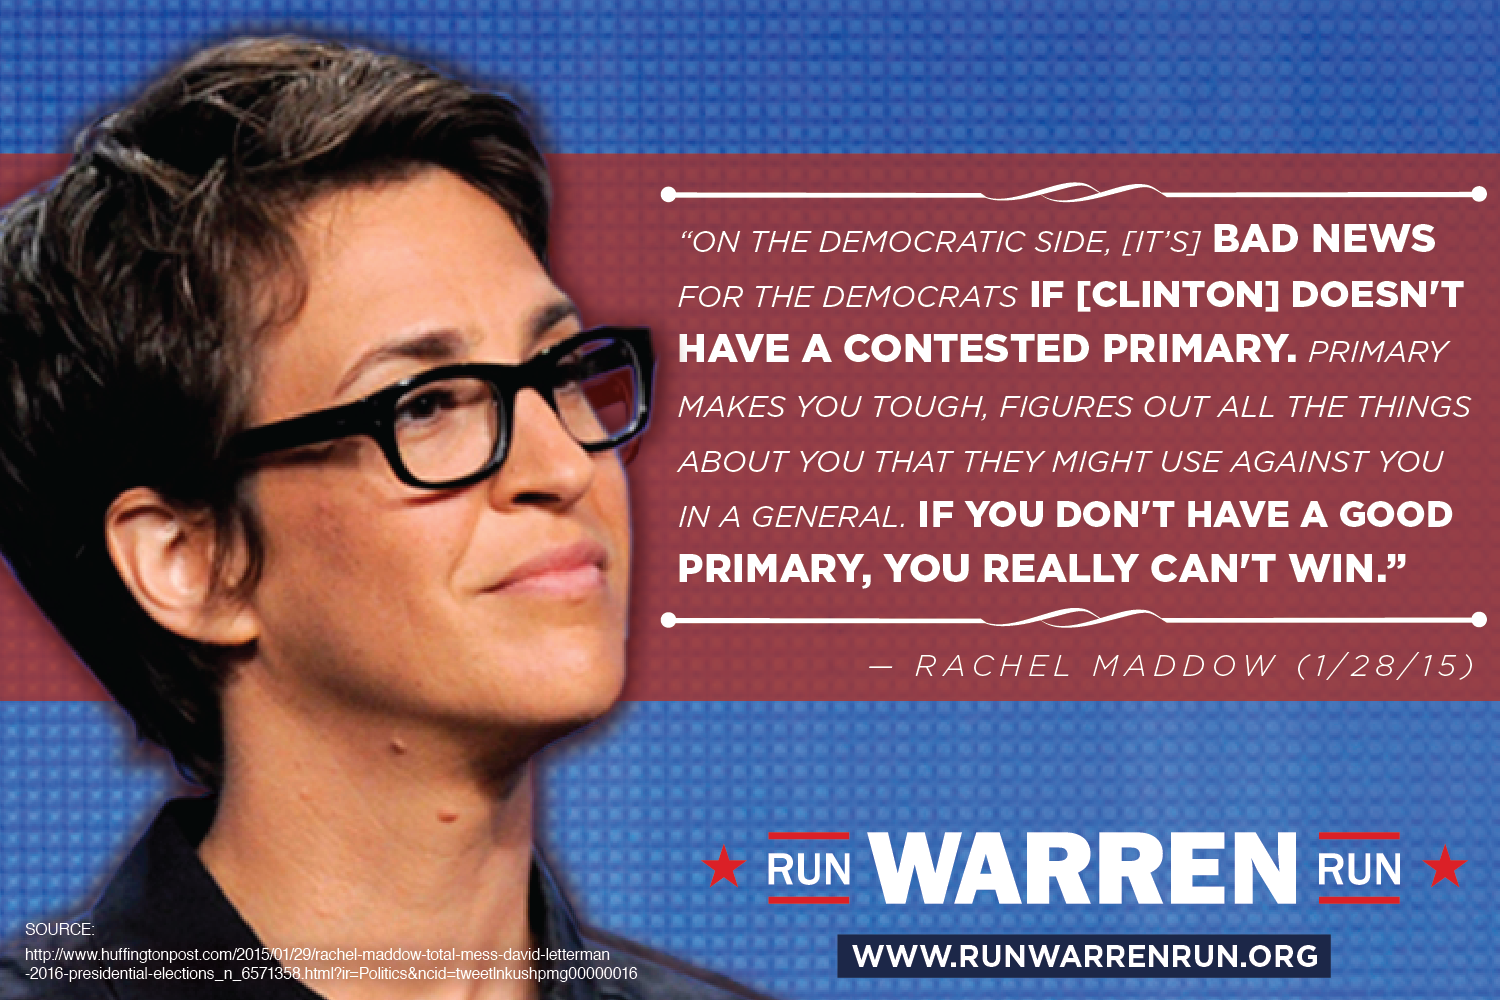 Rachel Maddow calls for contested primary for Democratic Party